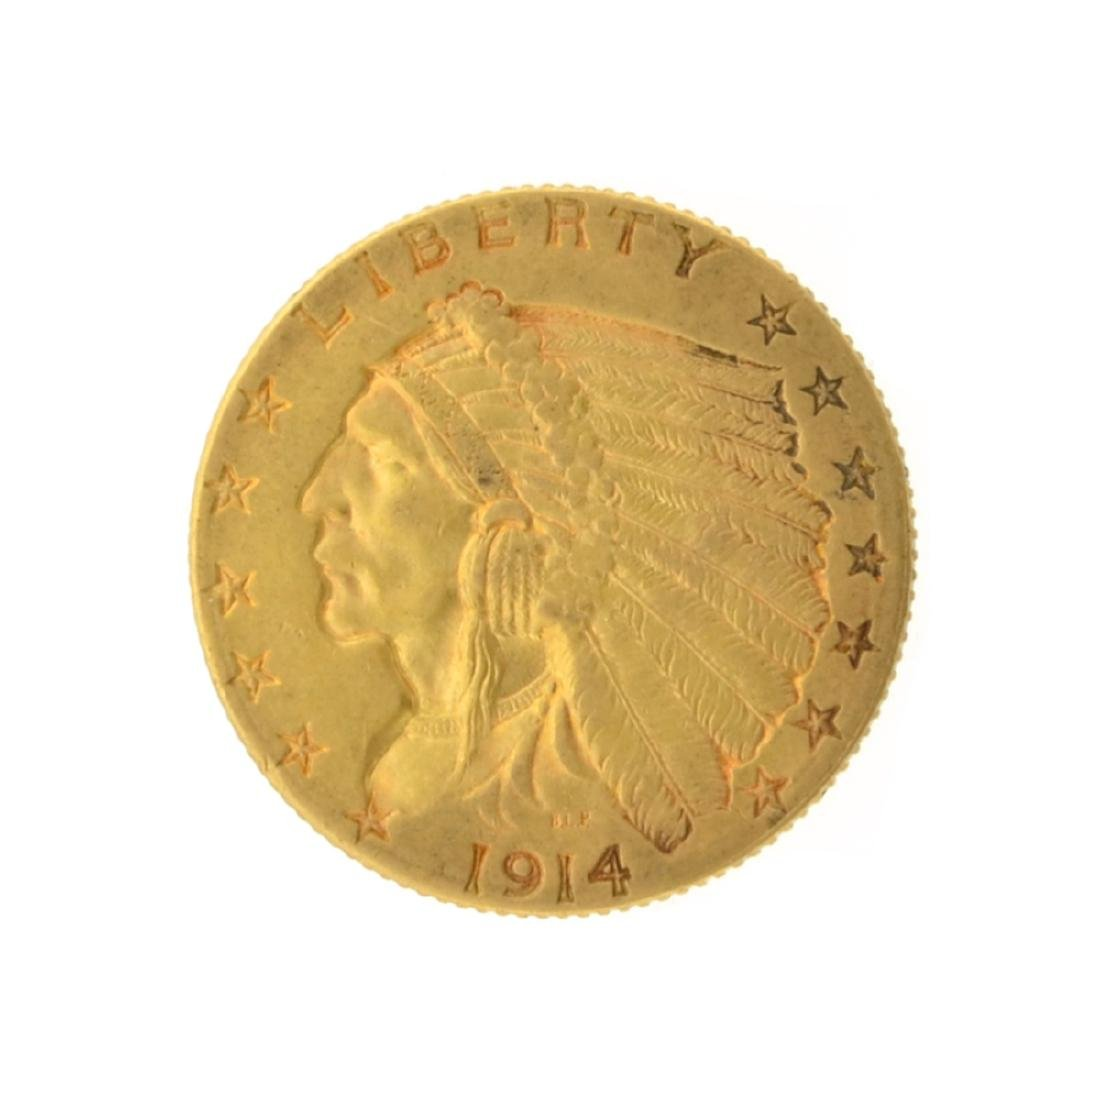 1914-D $2.50 Indian Head Gold Coin